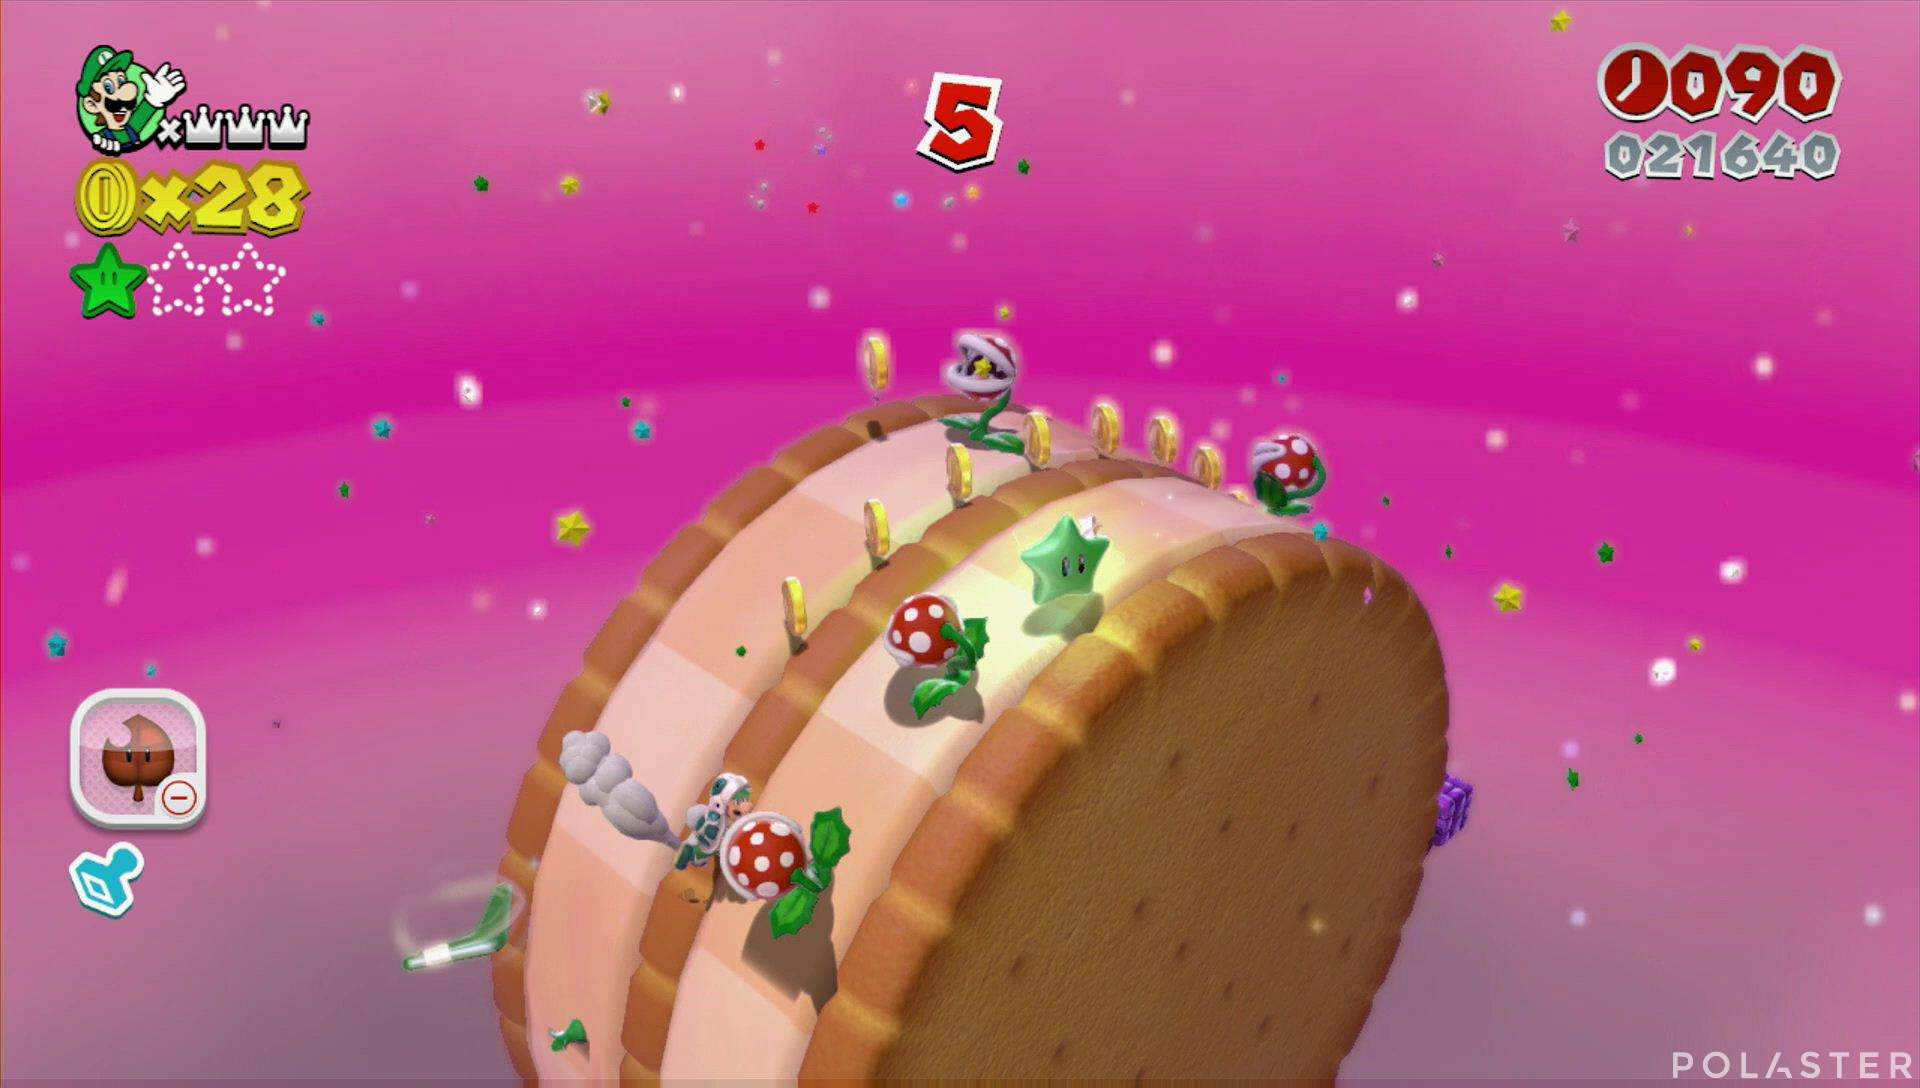 Super Mario 3D World Mundo Bowser-3 Estrella 2